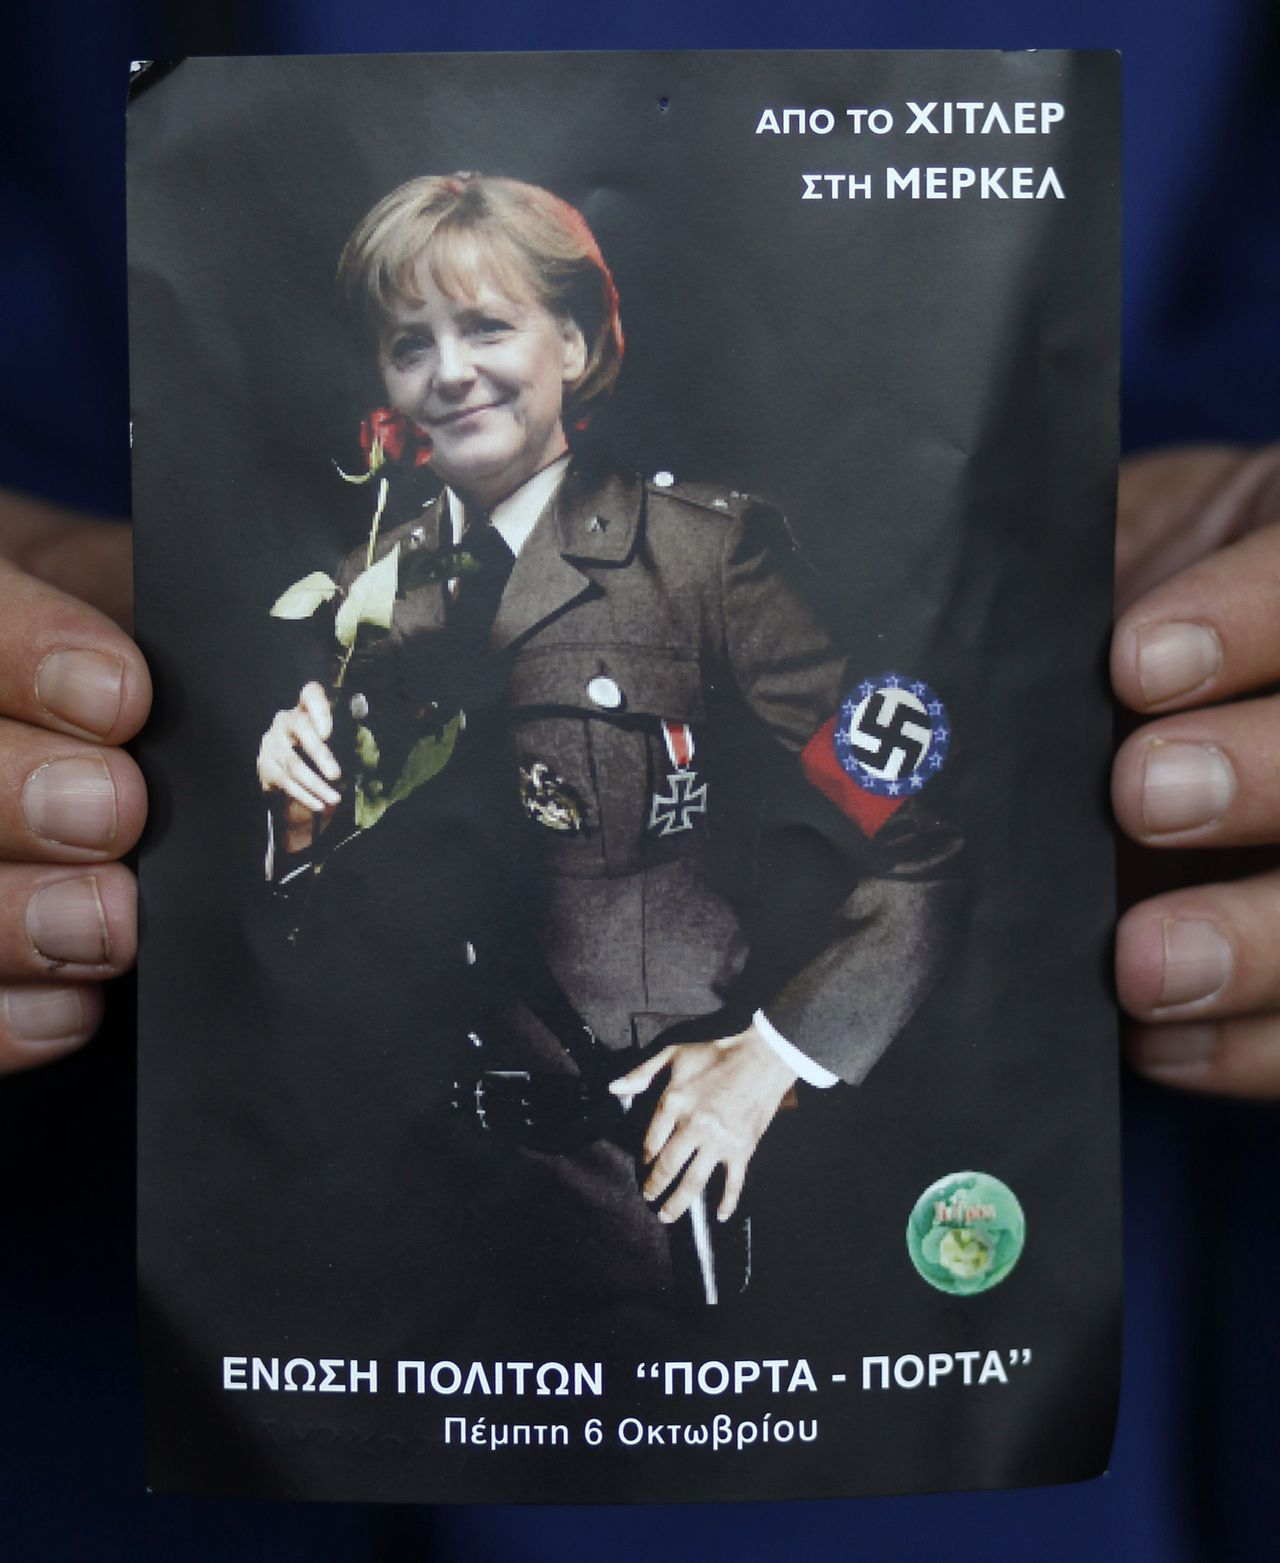 """A man displays a postcard-sized poster depicting German Chancellor Angela Merkel in a Nazi uniform with a swastika surrounded by the EU stars, in Athens October 28, 2011. Despite a deal clinched on Thursday at an EU summit to cancel half the value of Greece's 200 billion euro debt in the hands of private bondholders, many Greeks are deeply resentful of what they see as foreign meddling in their affairs, reviving memories of the wartime Nazi occupation. EU paymaster Germany, which has been vocal in demanding economic and fiscal reforms in return for its financial support, has become a target for demonstrators' derision. The accompanying words read """"From Hitler to Merkel"""" and """"Citizens Movement Porta-Porta"""". REUTERS/Yannis Behrakis (GREECE - Tags: CIVIL UNREST POLITICS BUSINESS)"""